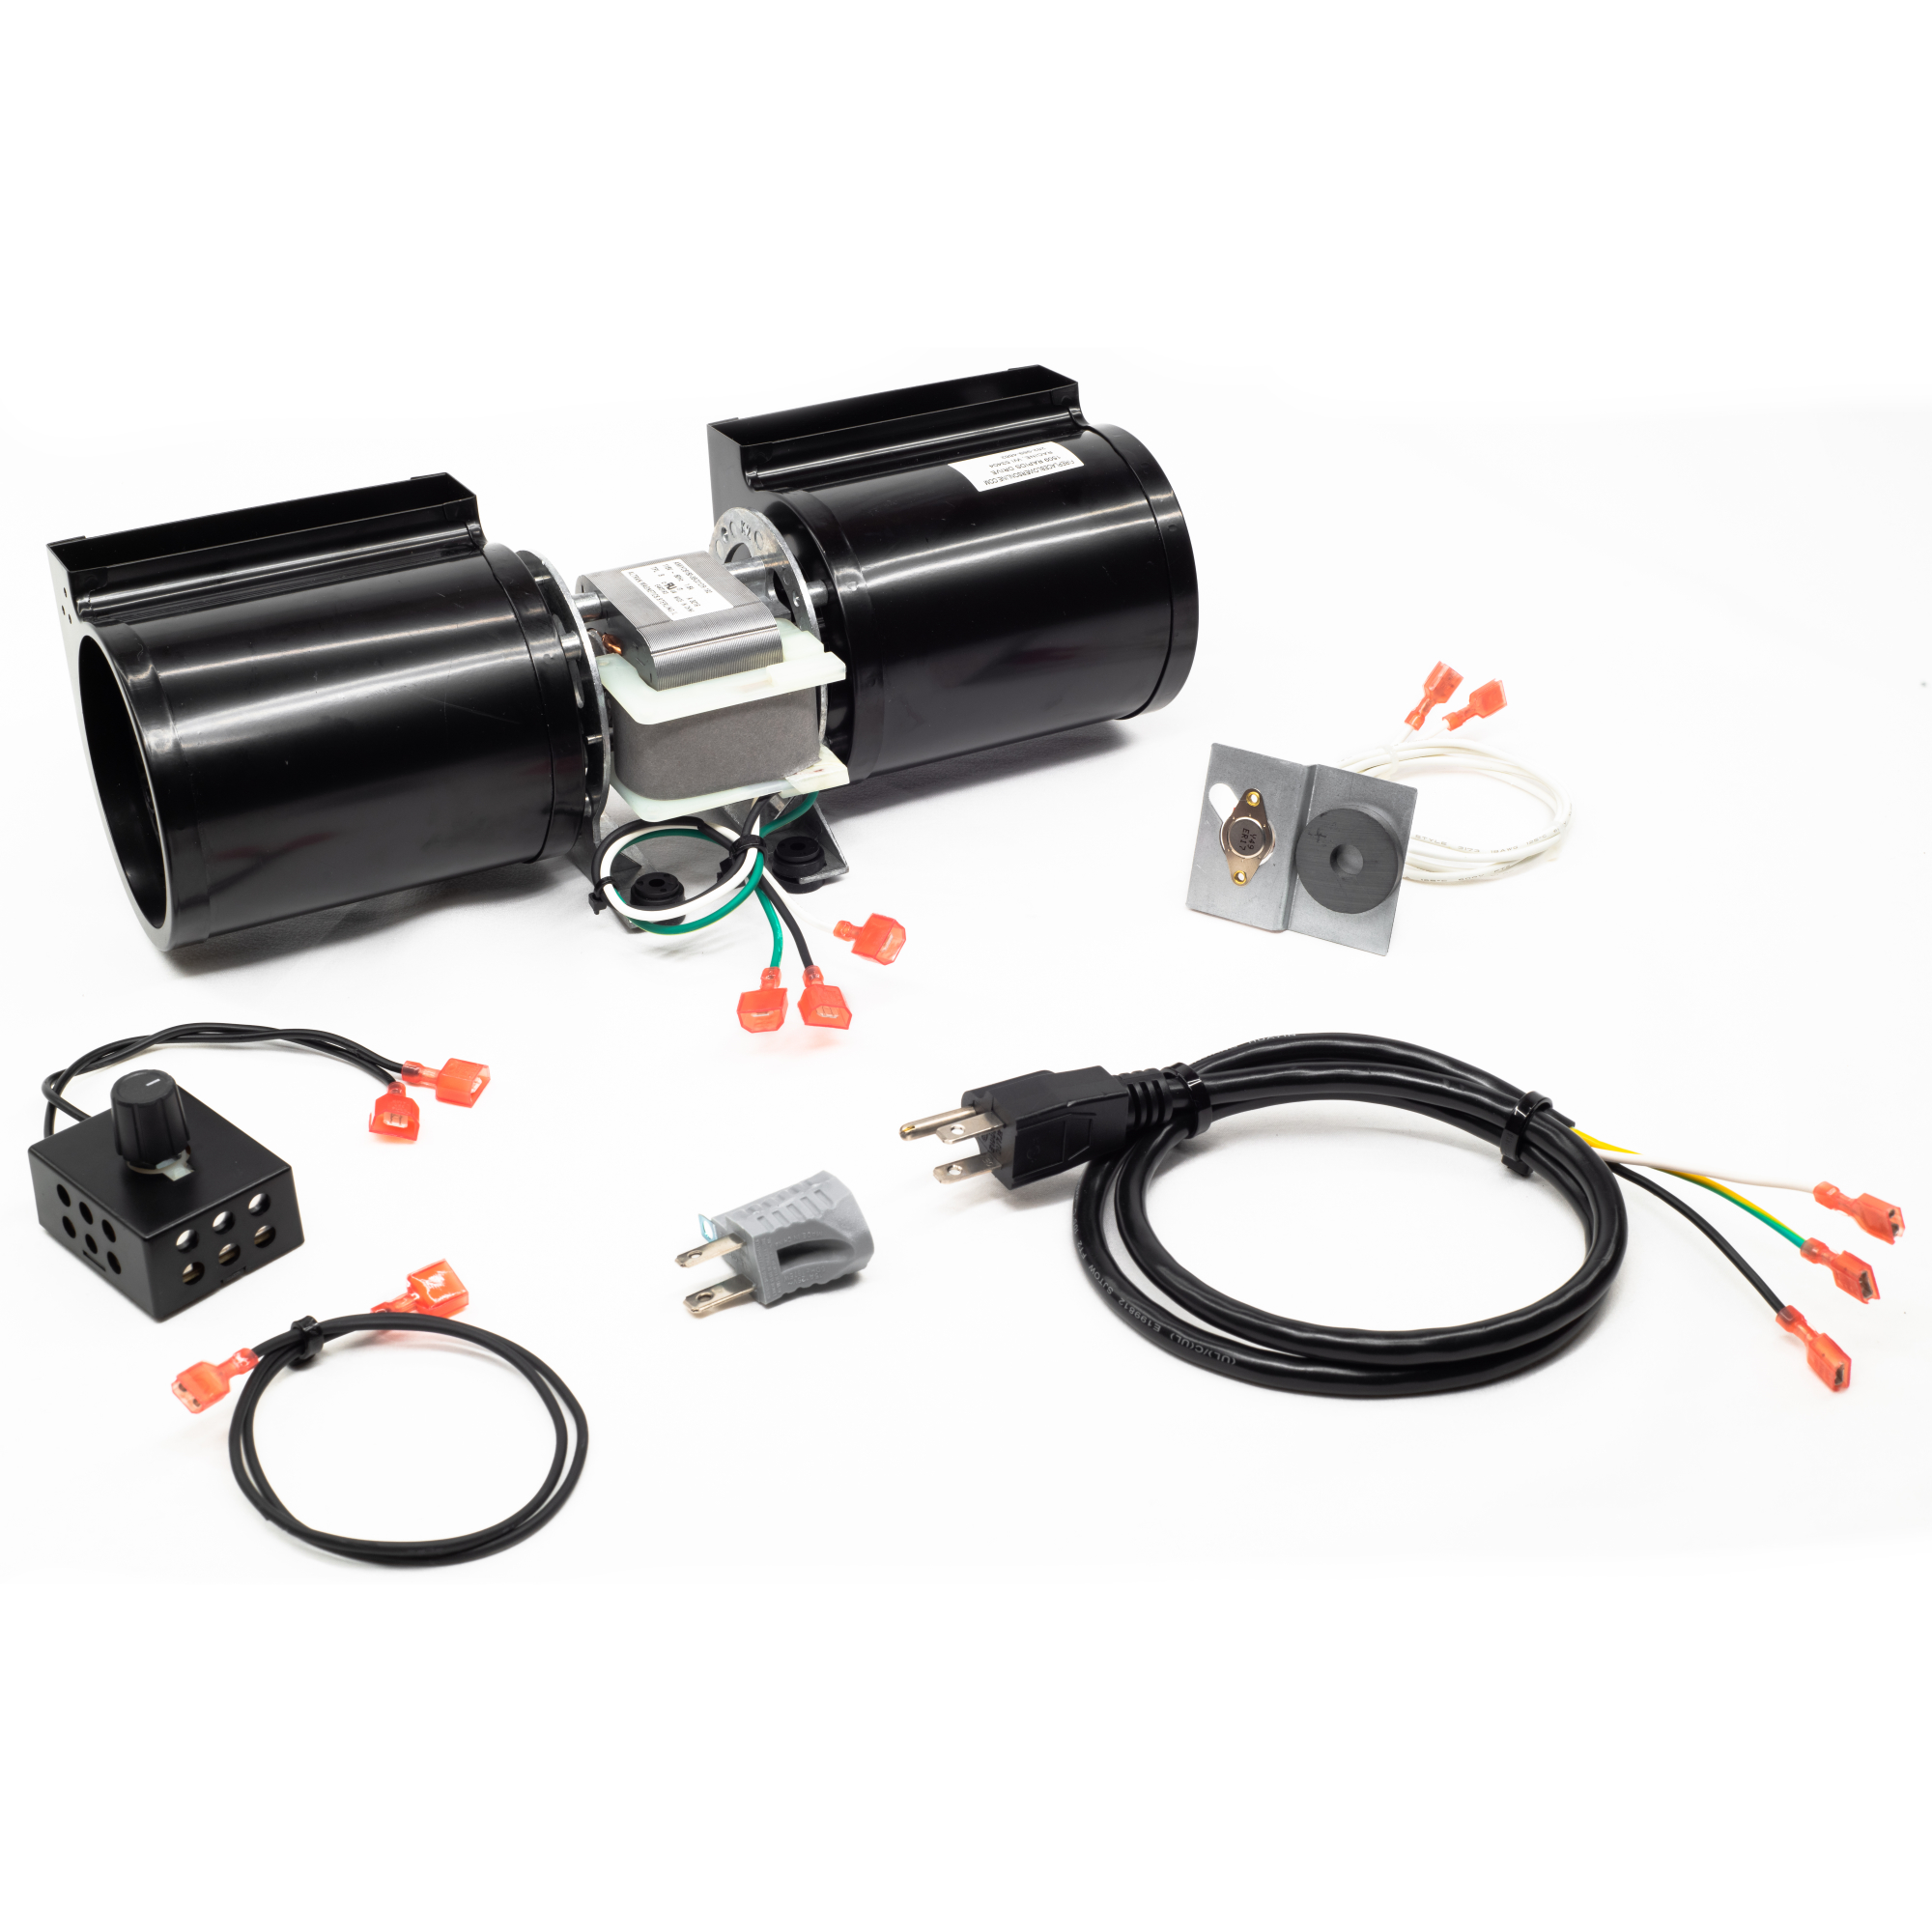 FAB-1600 Fireplace Blower Fan Kit for Superior Fireplaces